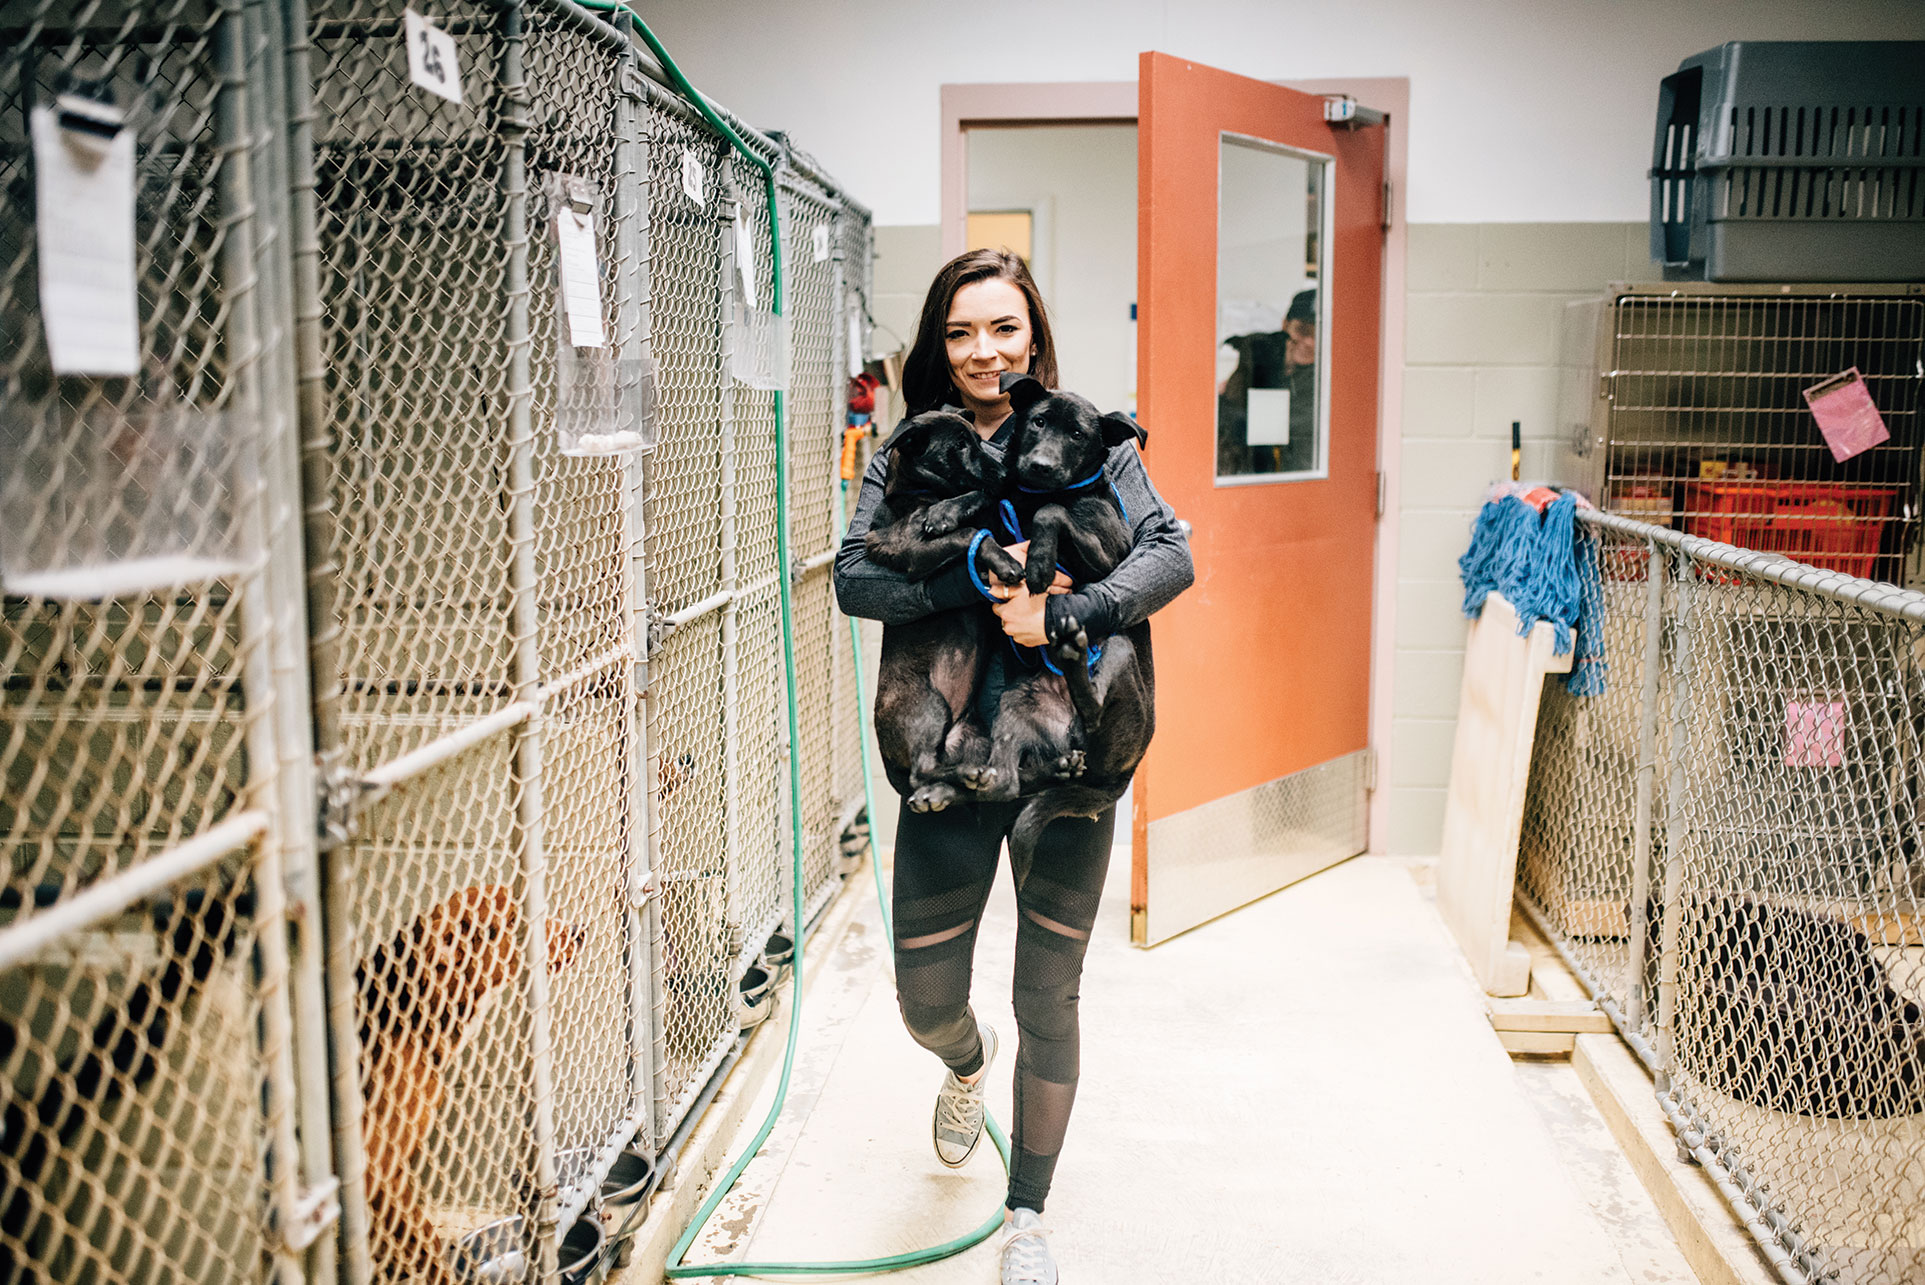 Volunteer Lauren Moffat helps unload dogs at the Kittery Animal Hospital, which shelters strays and offers adoptions.